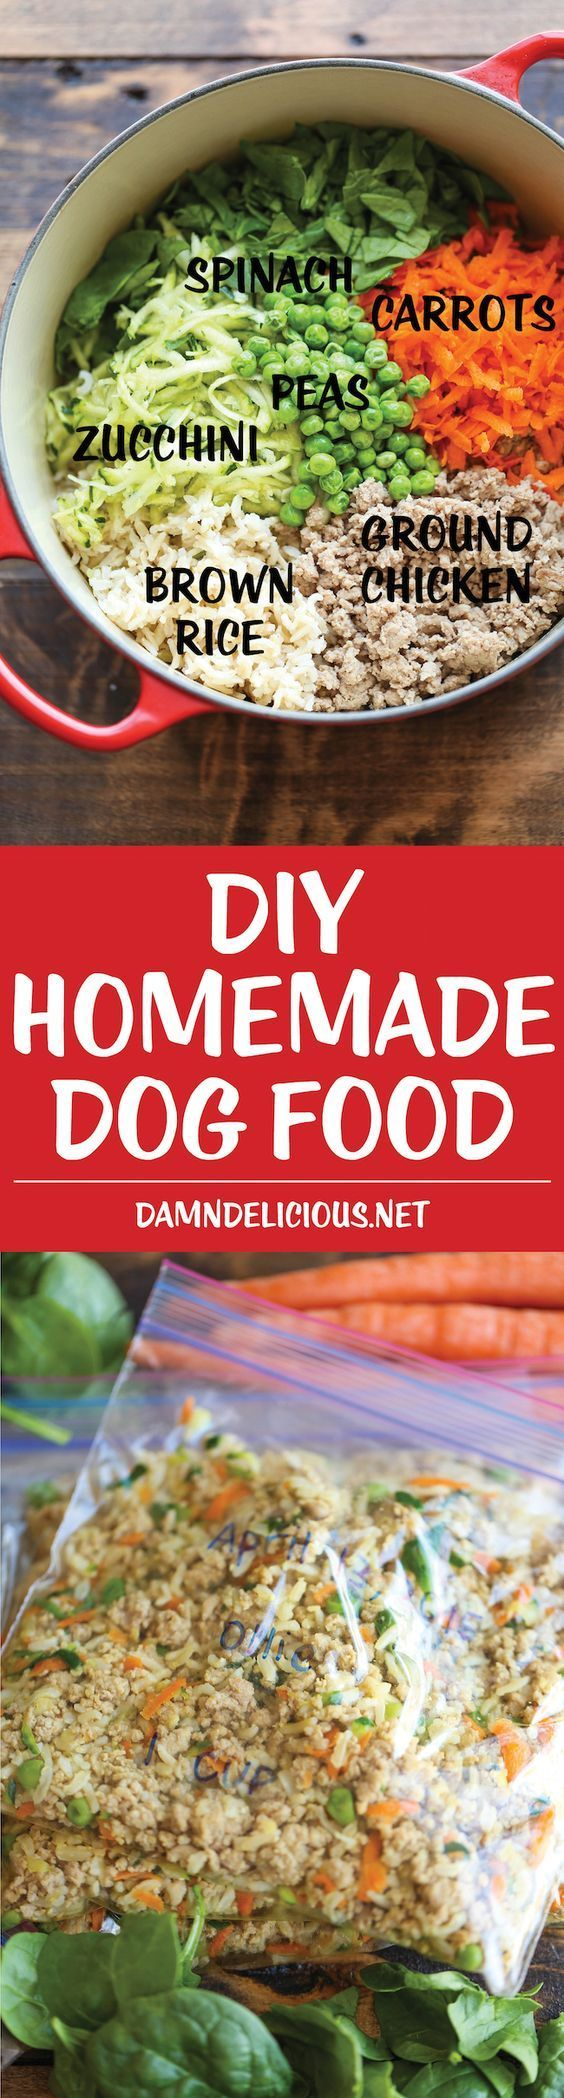 485 best pet food recipes images on pinterest cat cafe cats and the 5 best homemade dog food recipes to keep your dog healthy forumfinder Image collections